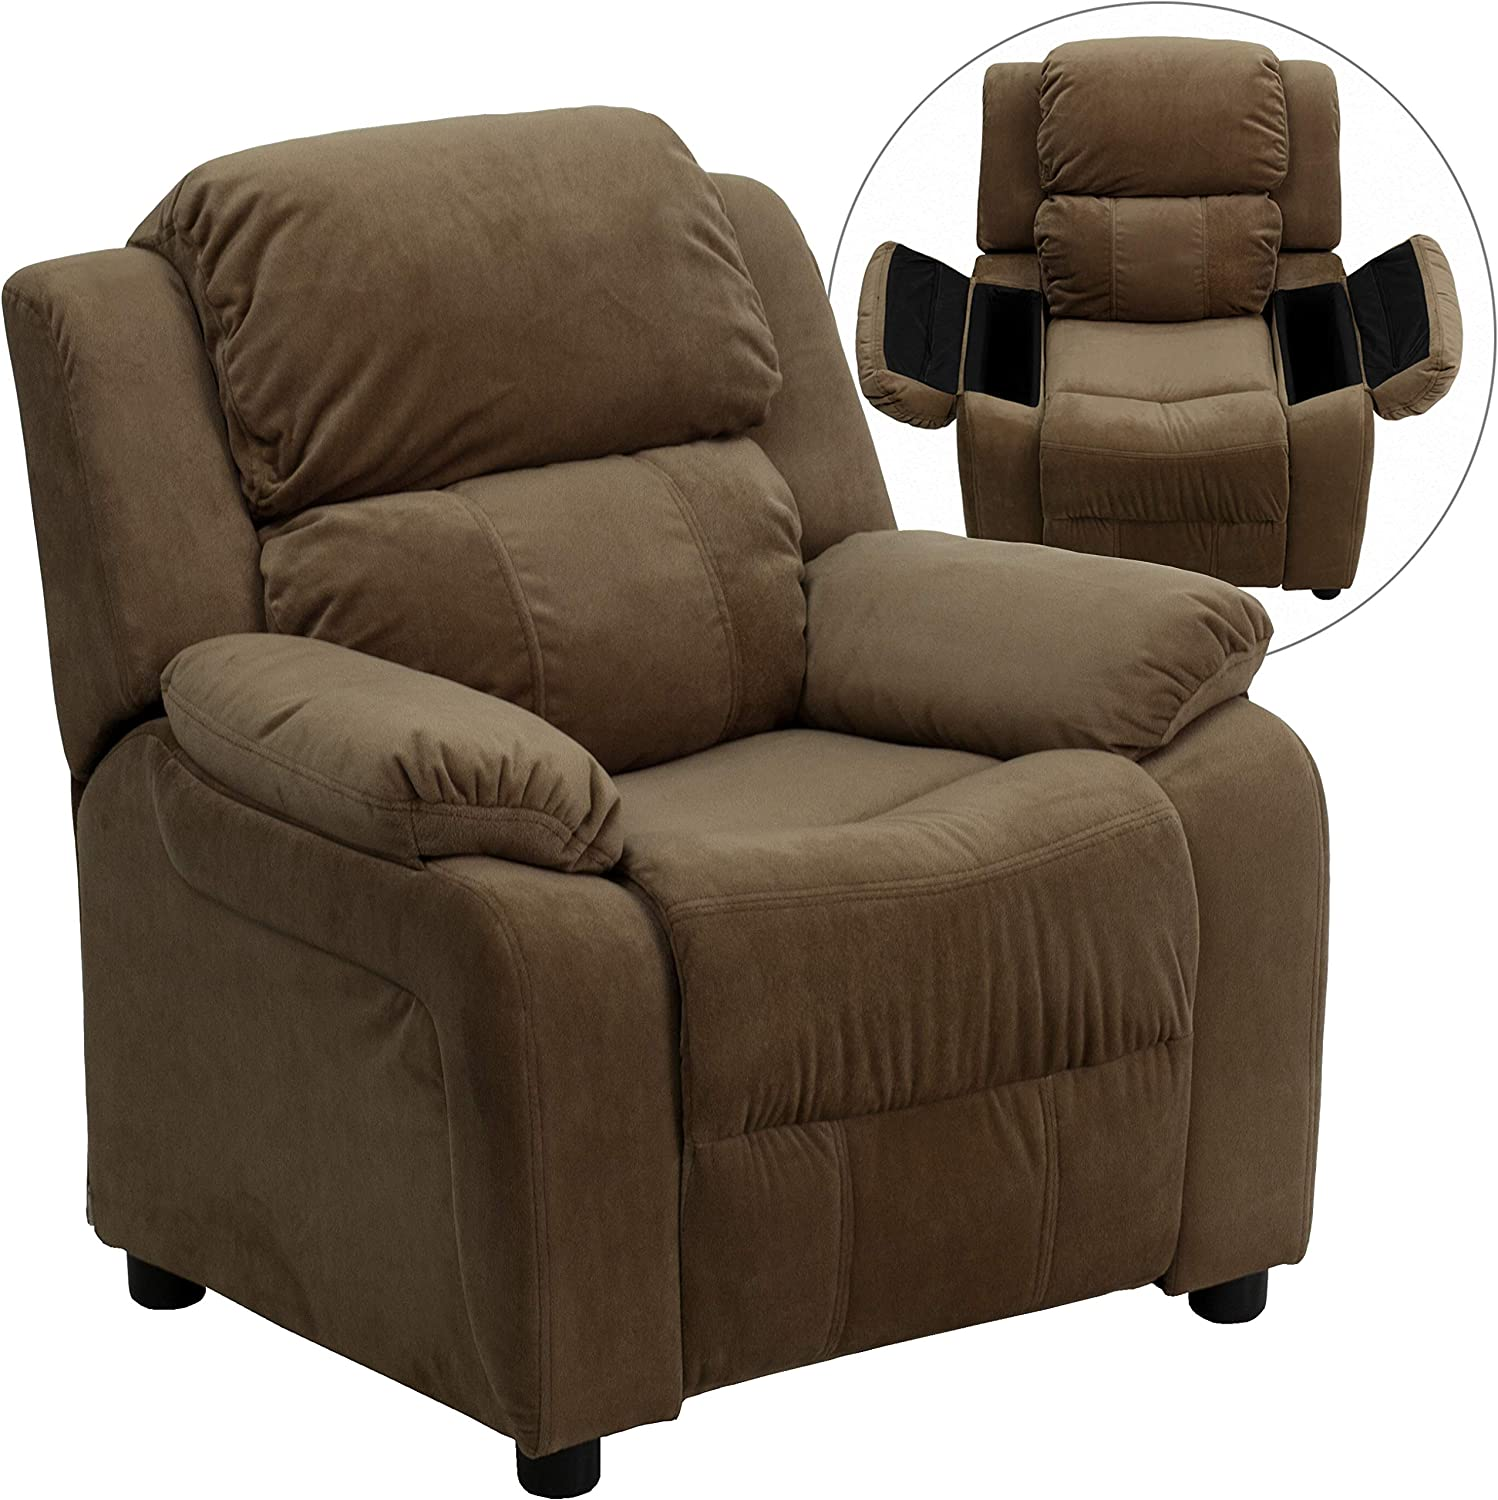 Top 10 Best Kids Recliner (2020 Reviews & Buying Guide) 5